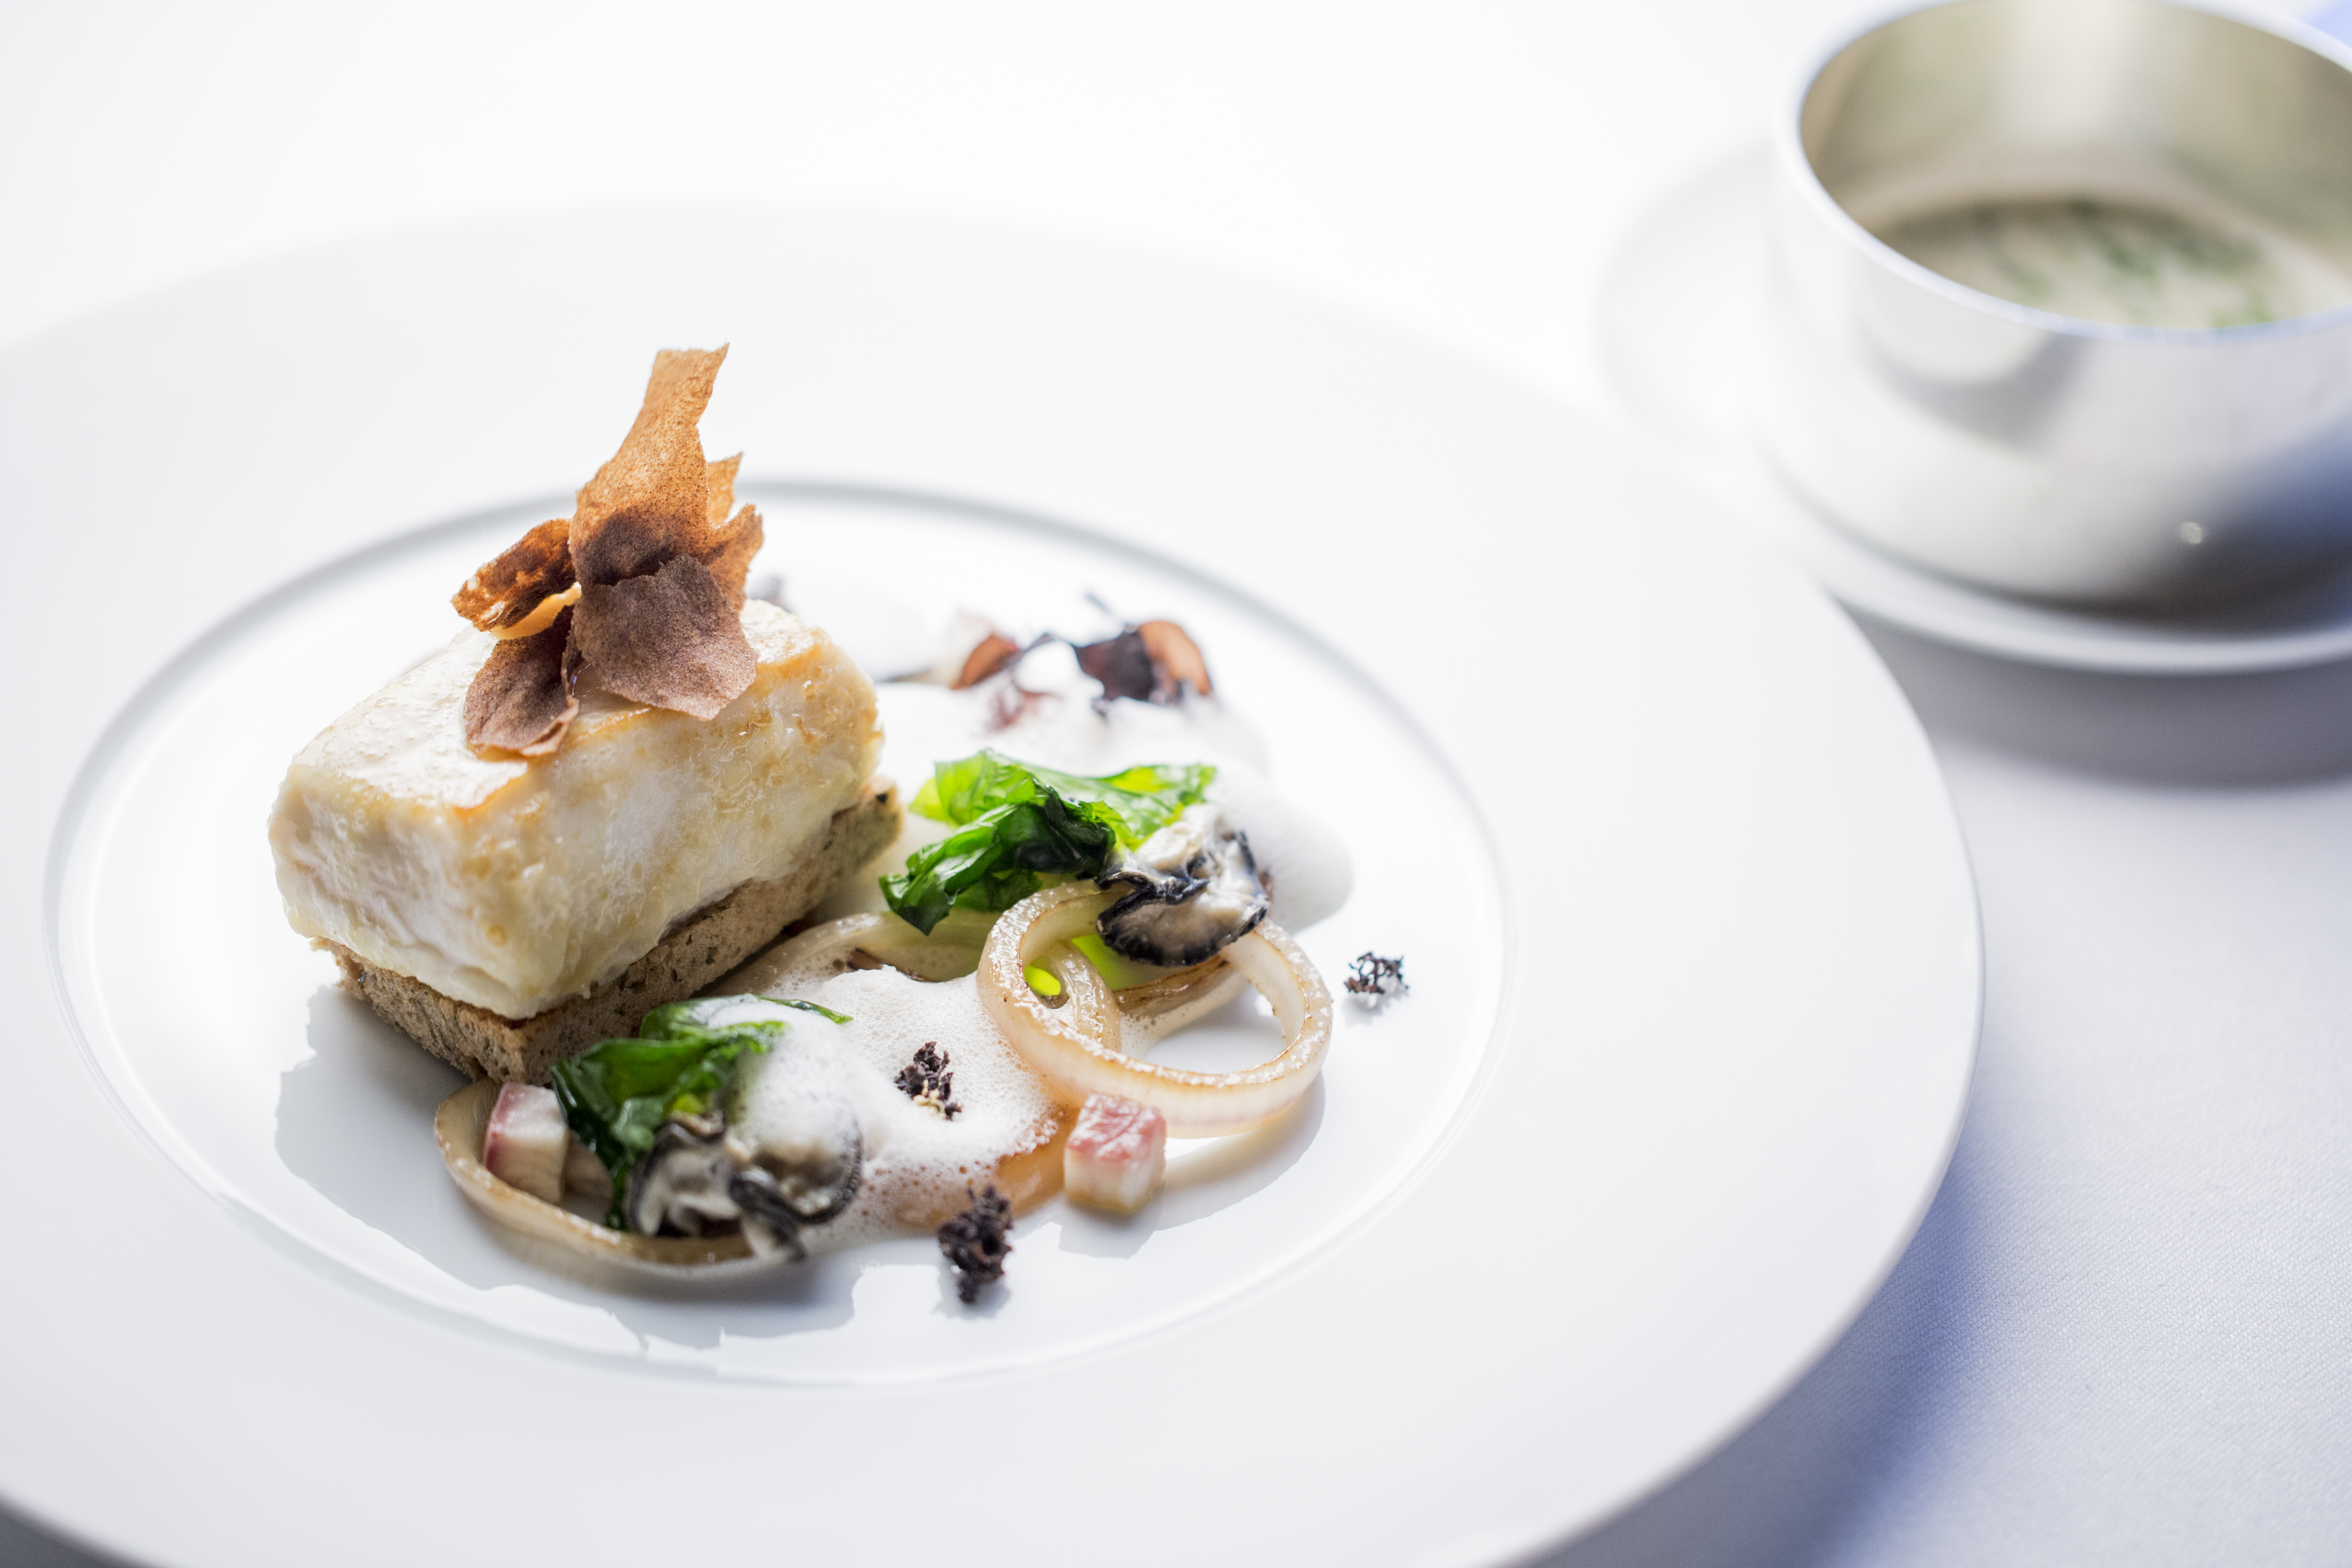 Halibut, oyster & seaweed by Jean-Philippe Blondet, executive chef at Alain Ducasse at The Dorchester ®pmonetta 7393